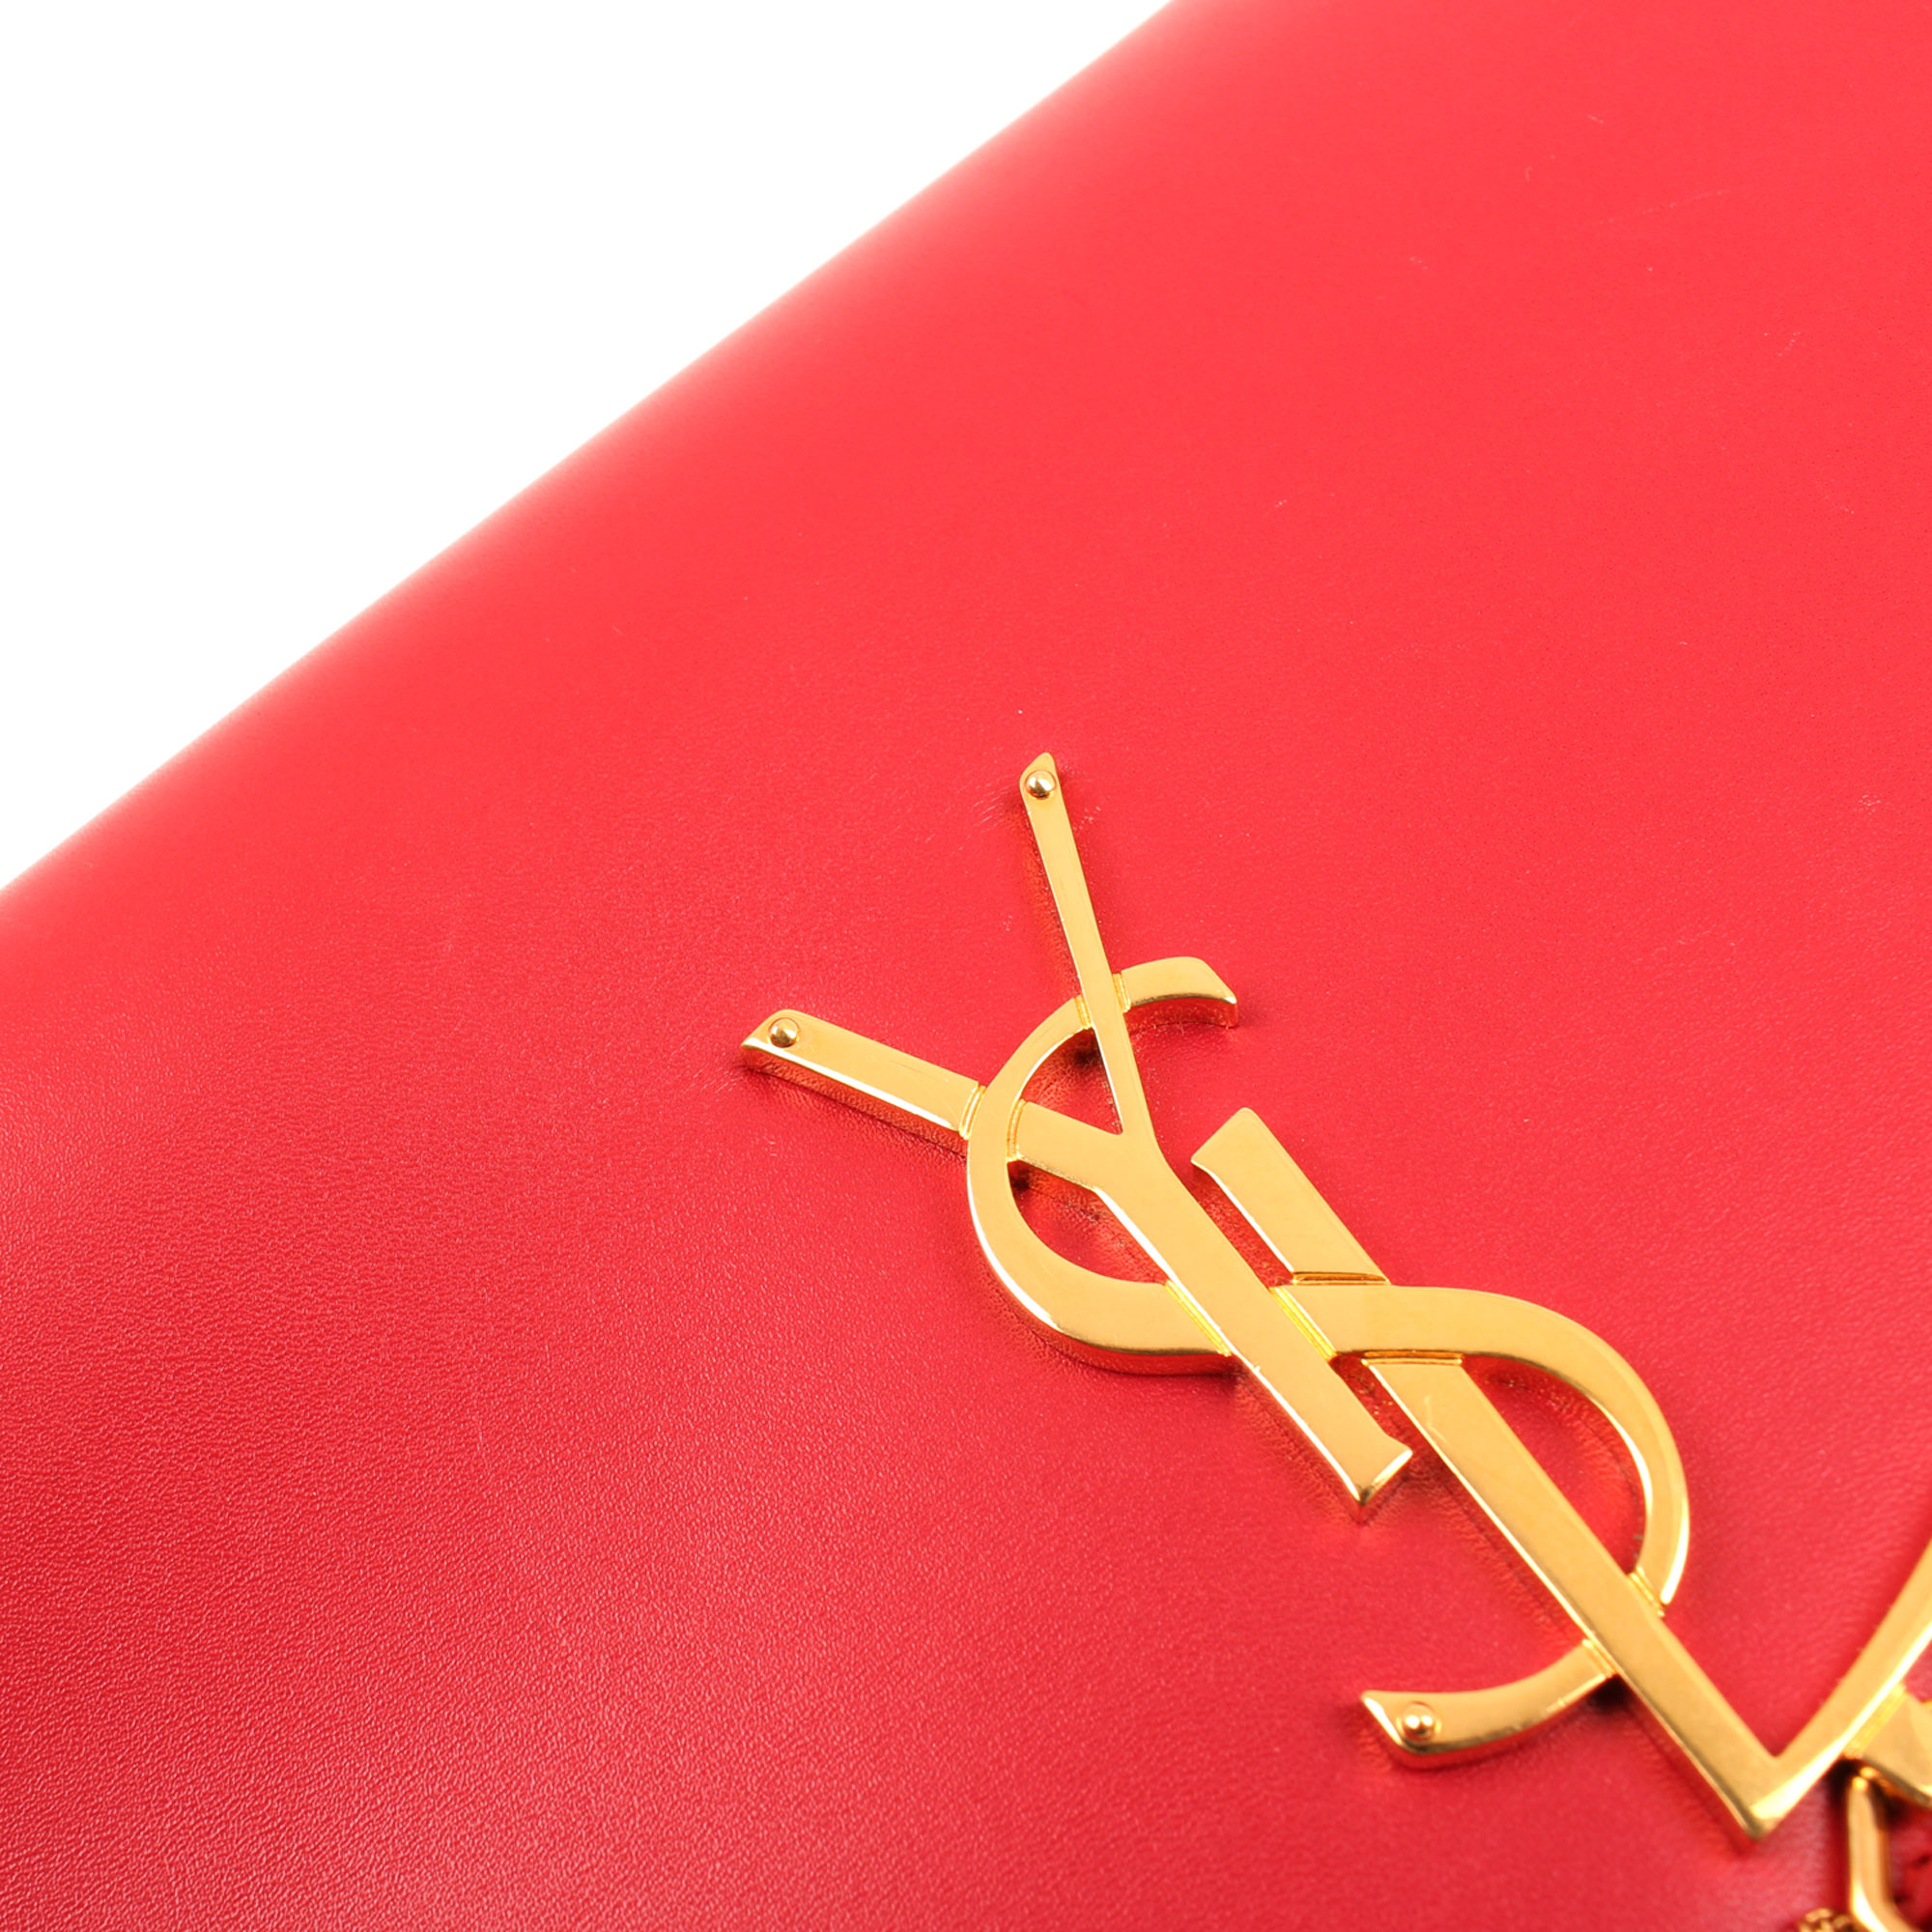 Detail image of ysl kate medium bag red calfskin leather